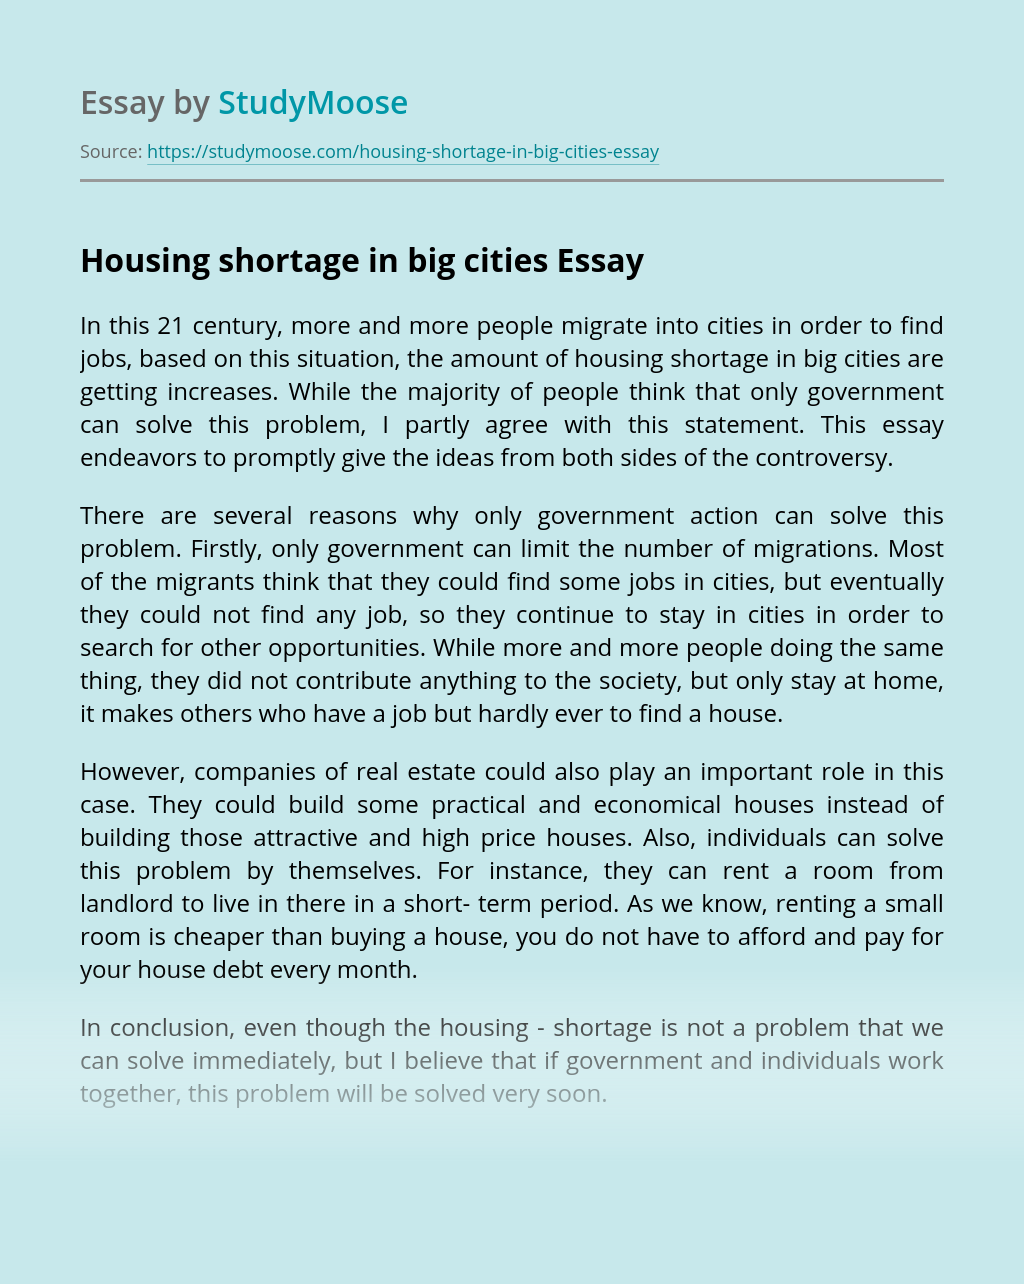 Housing shortage in big cities